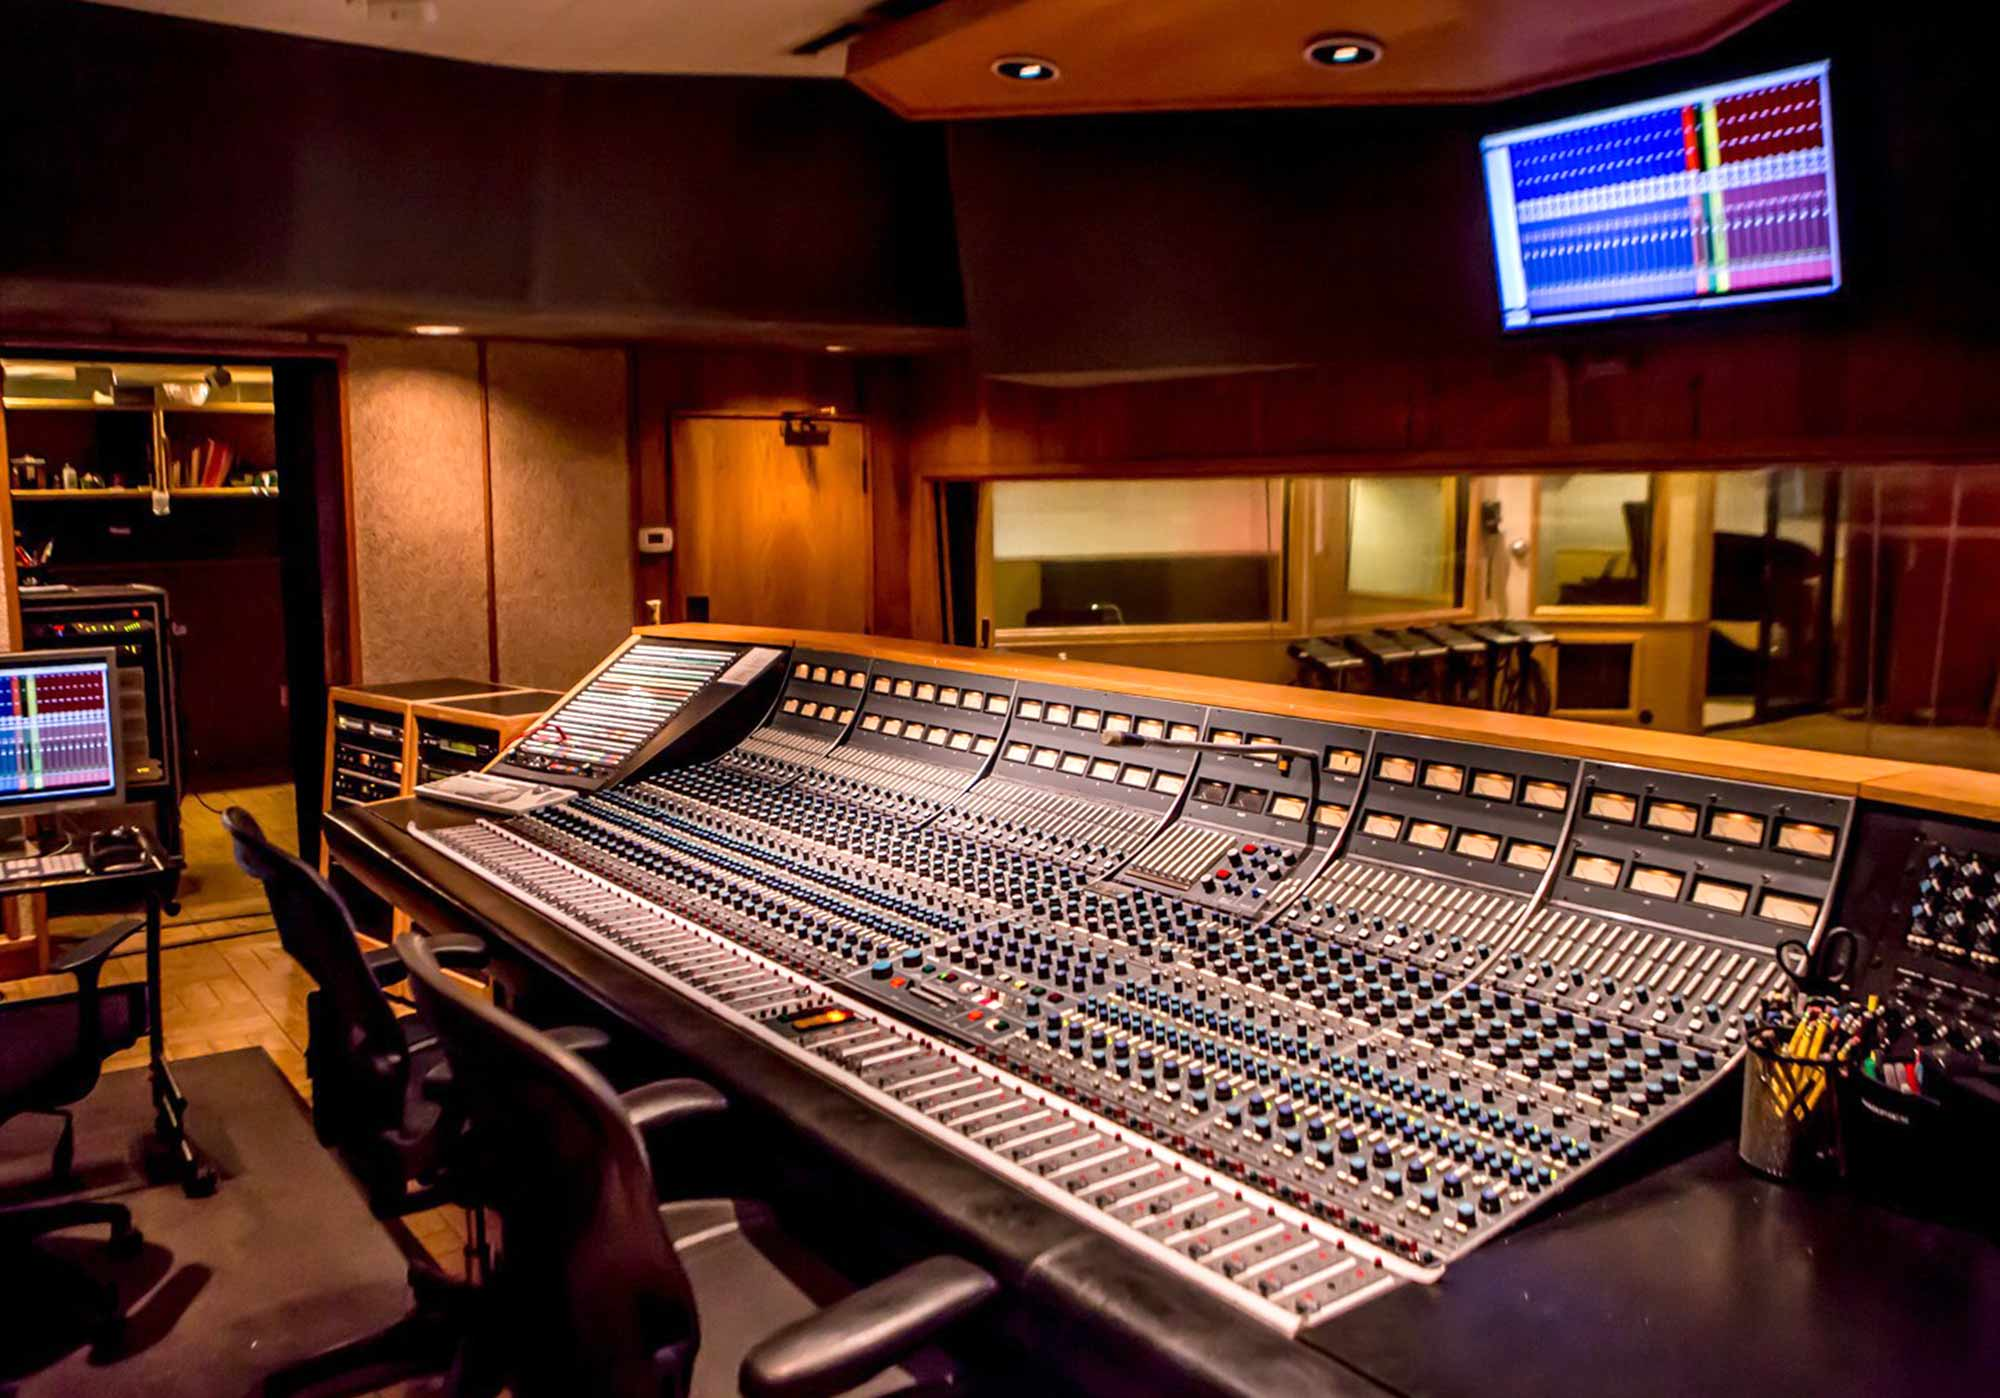 sunset_studios_control_room_2